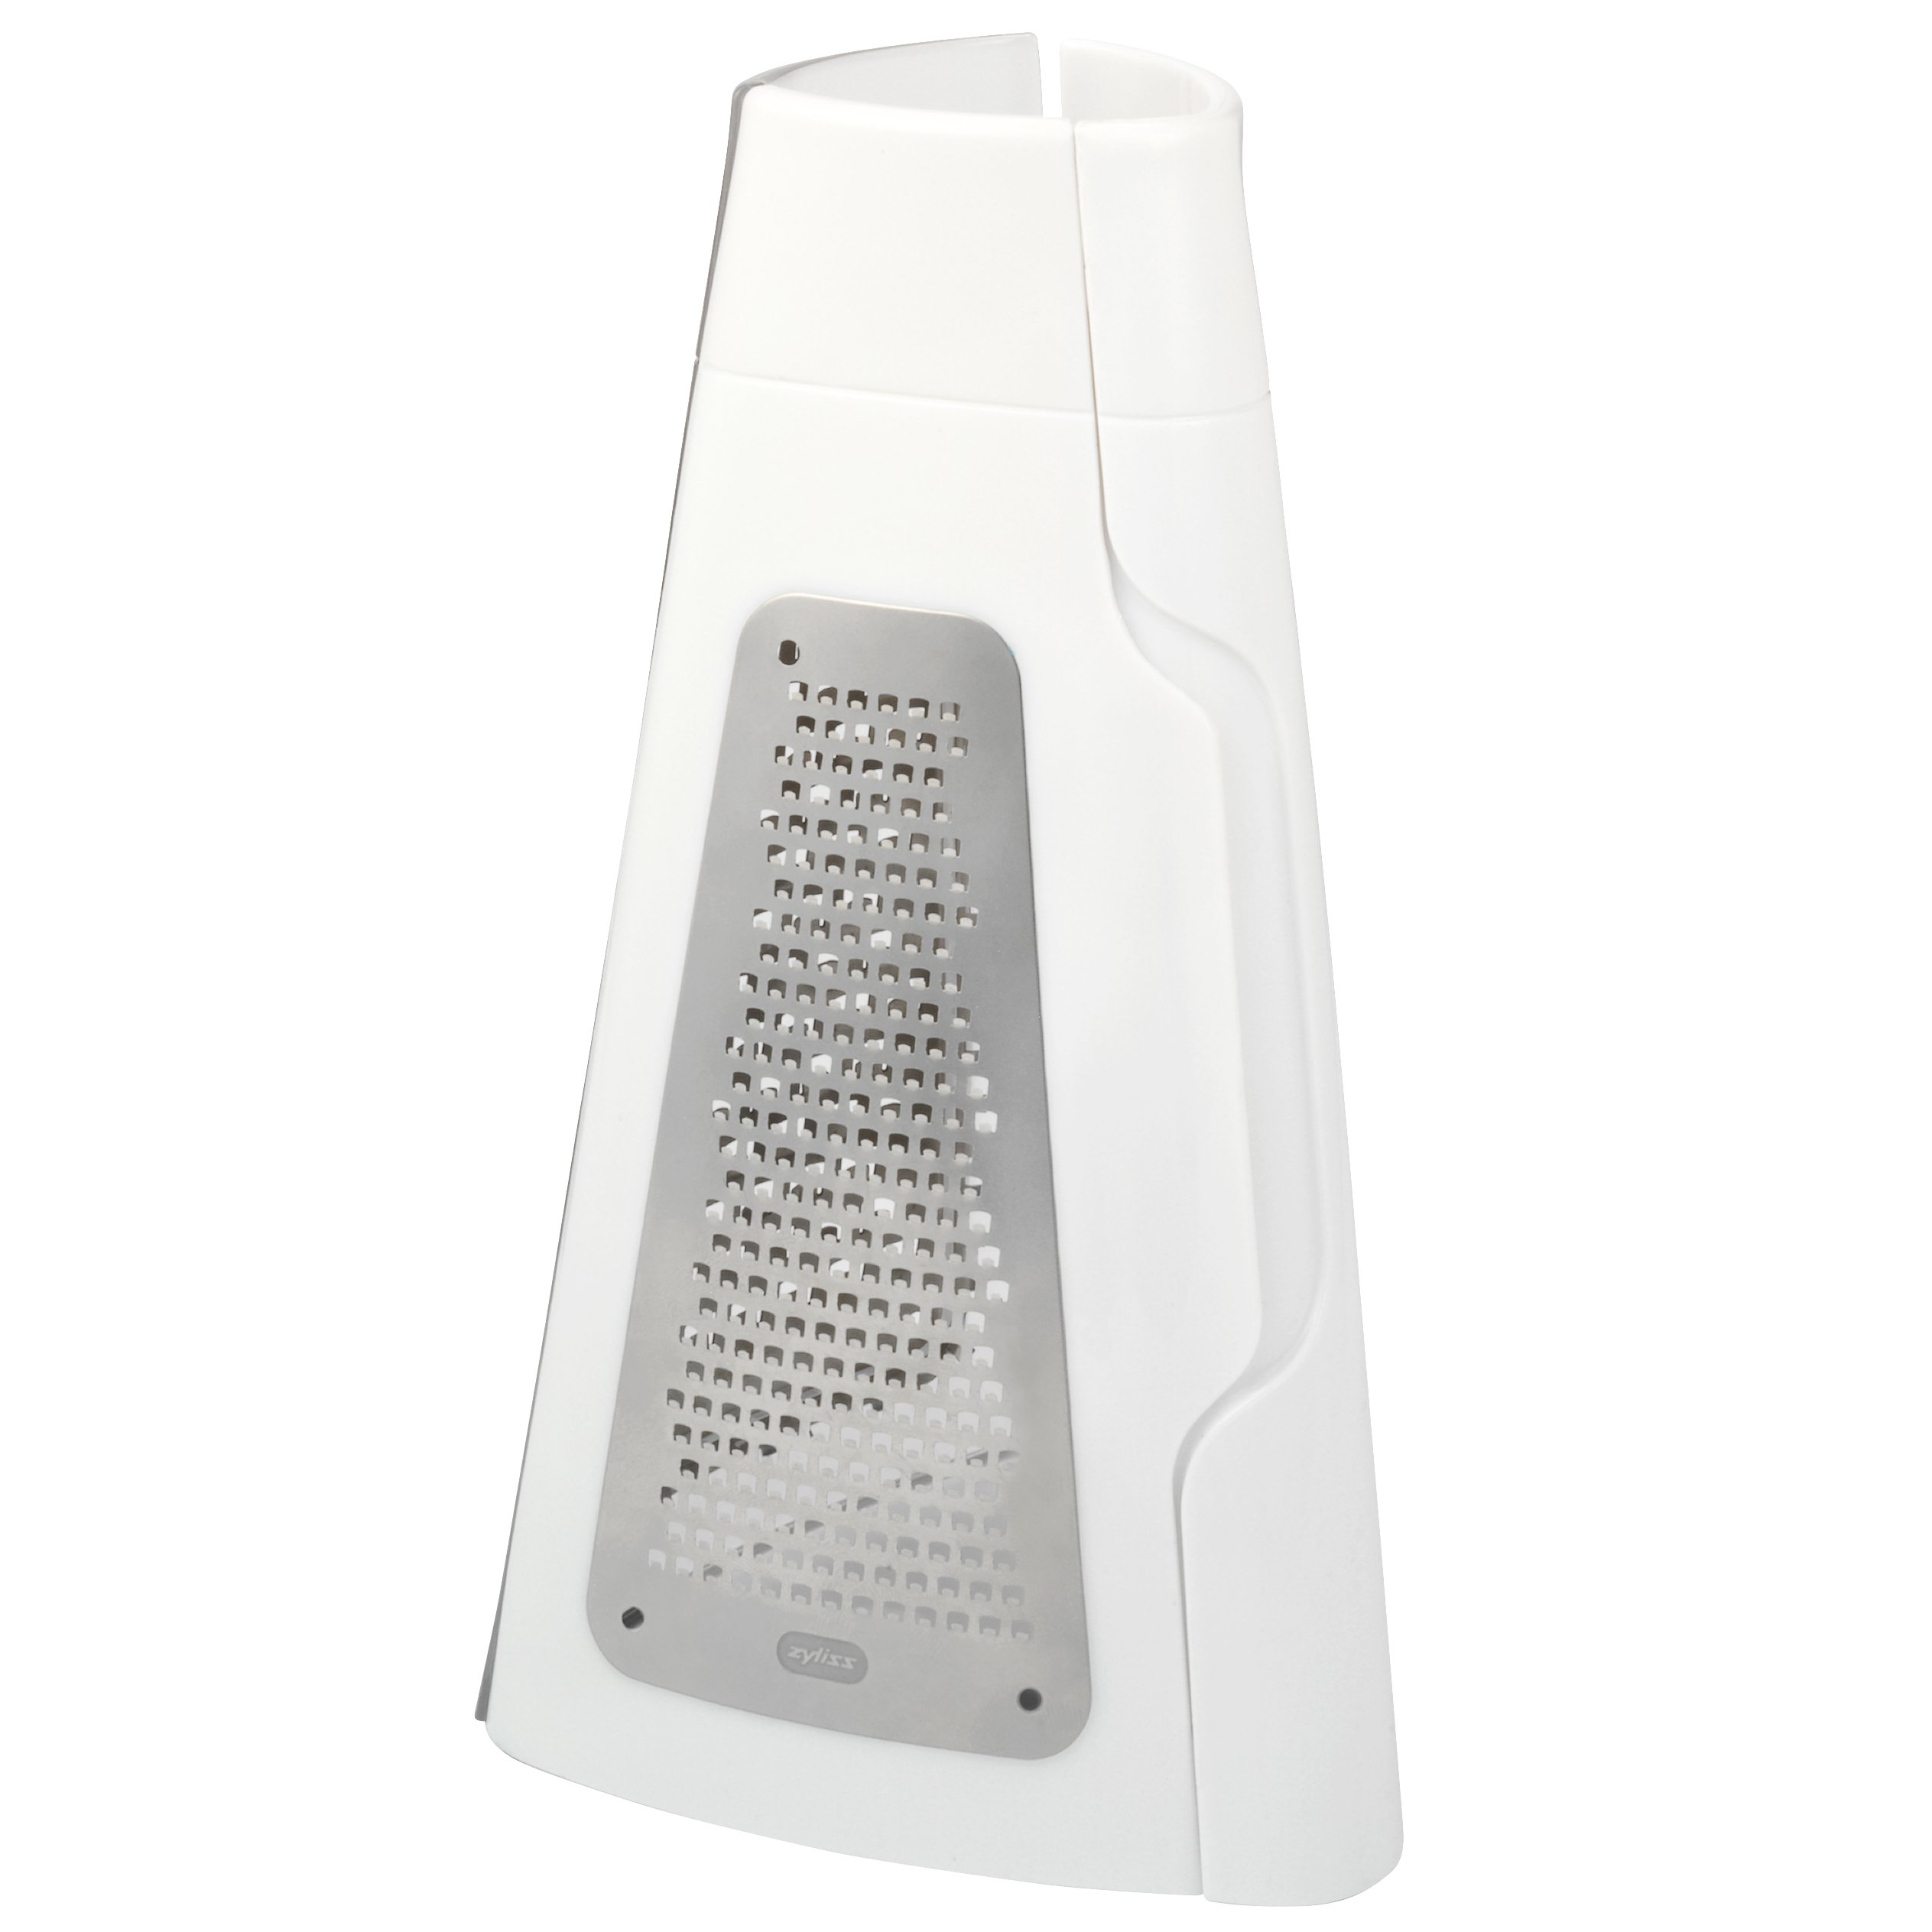 ZYLISS 3-in-1 Folding Grater by Zyliss